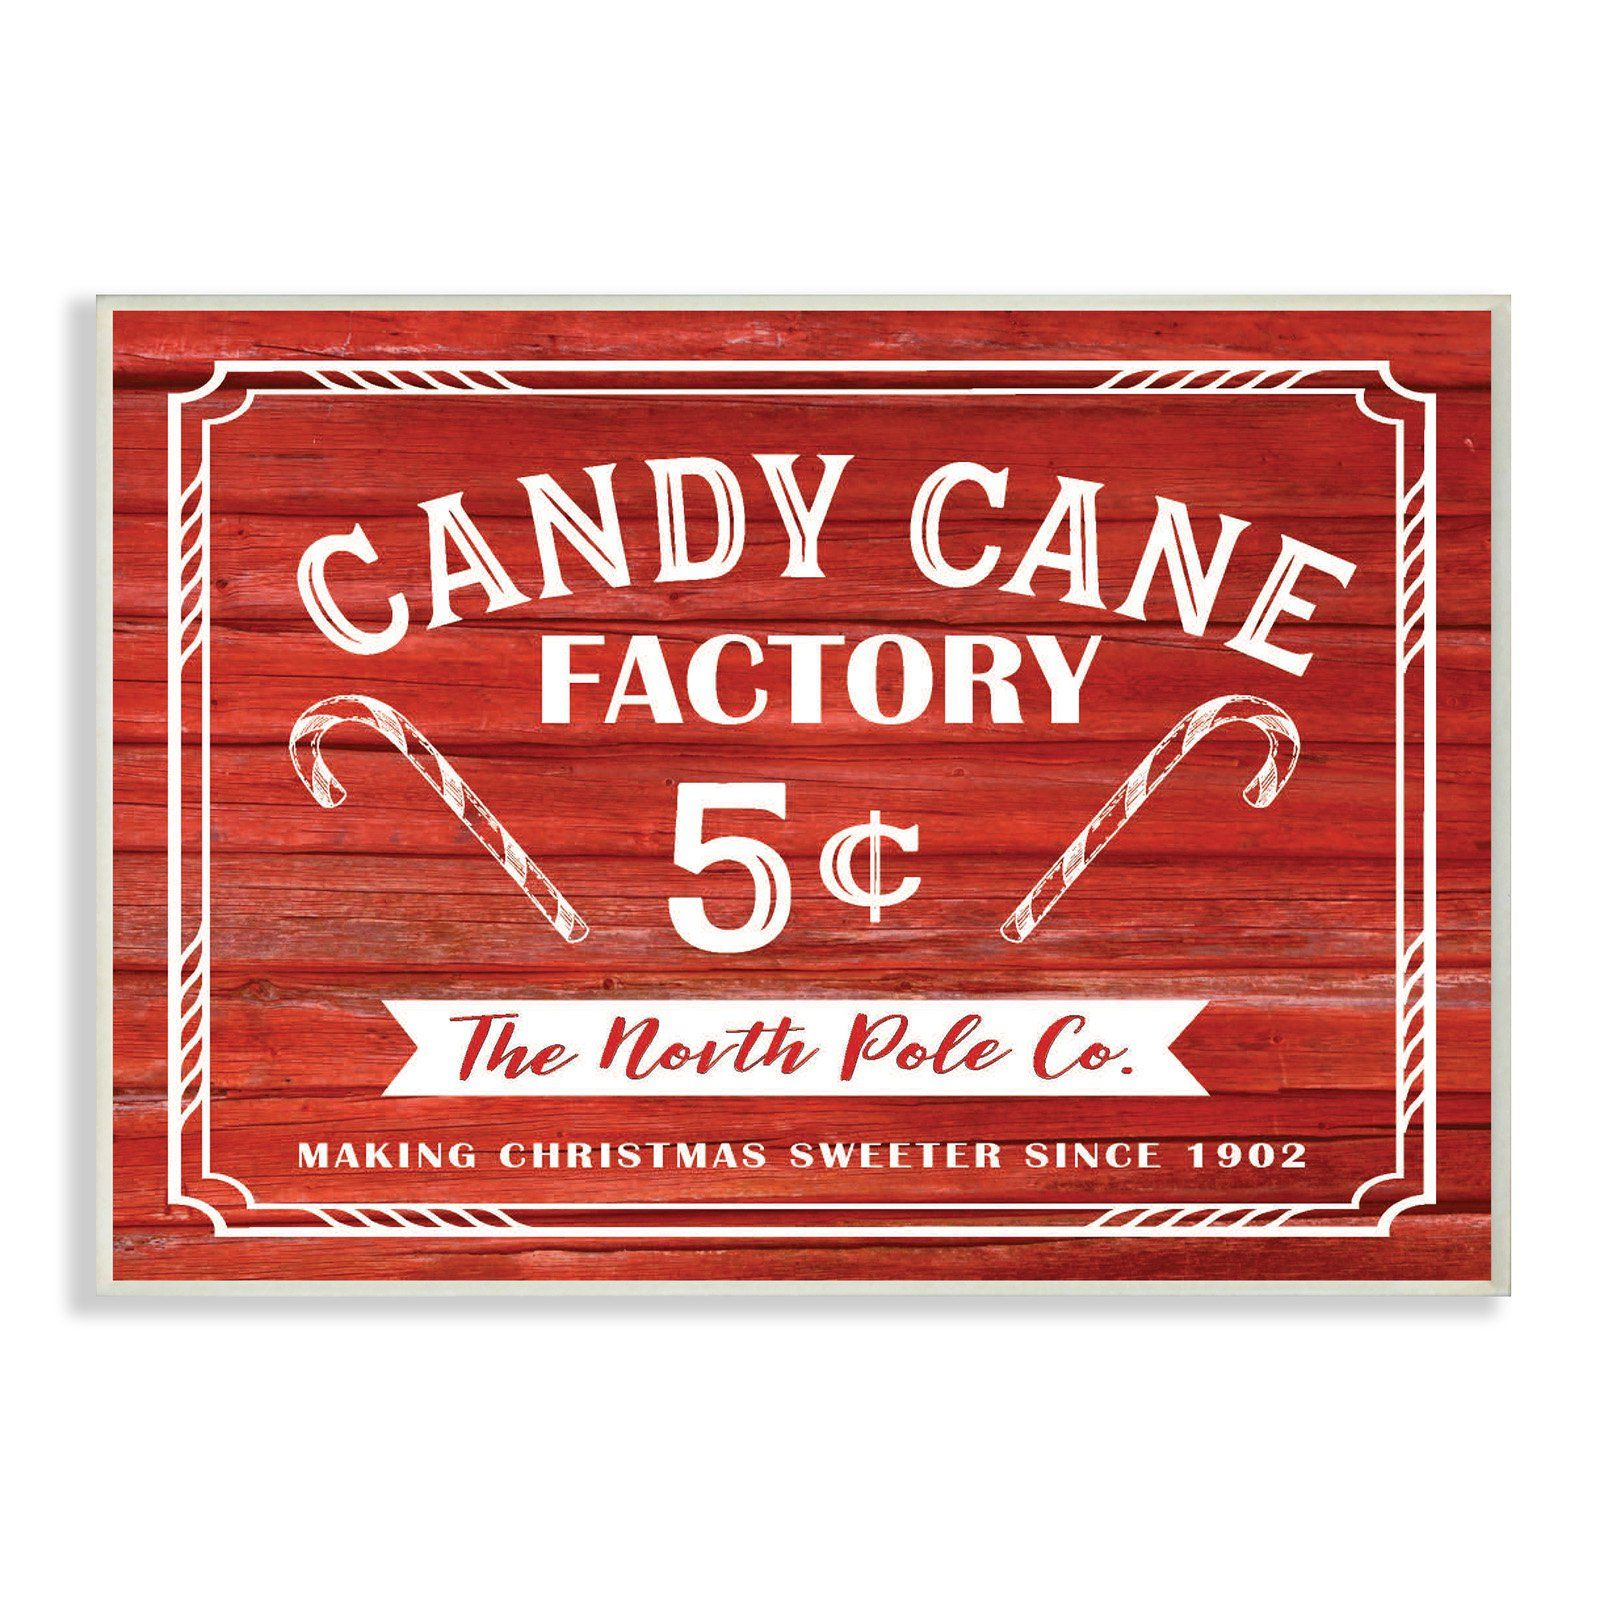 The Stupell Home Decor Collection Candy Cane Factory